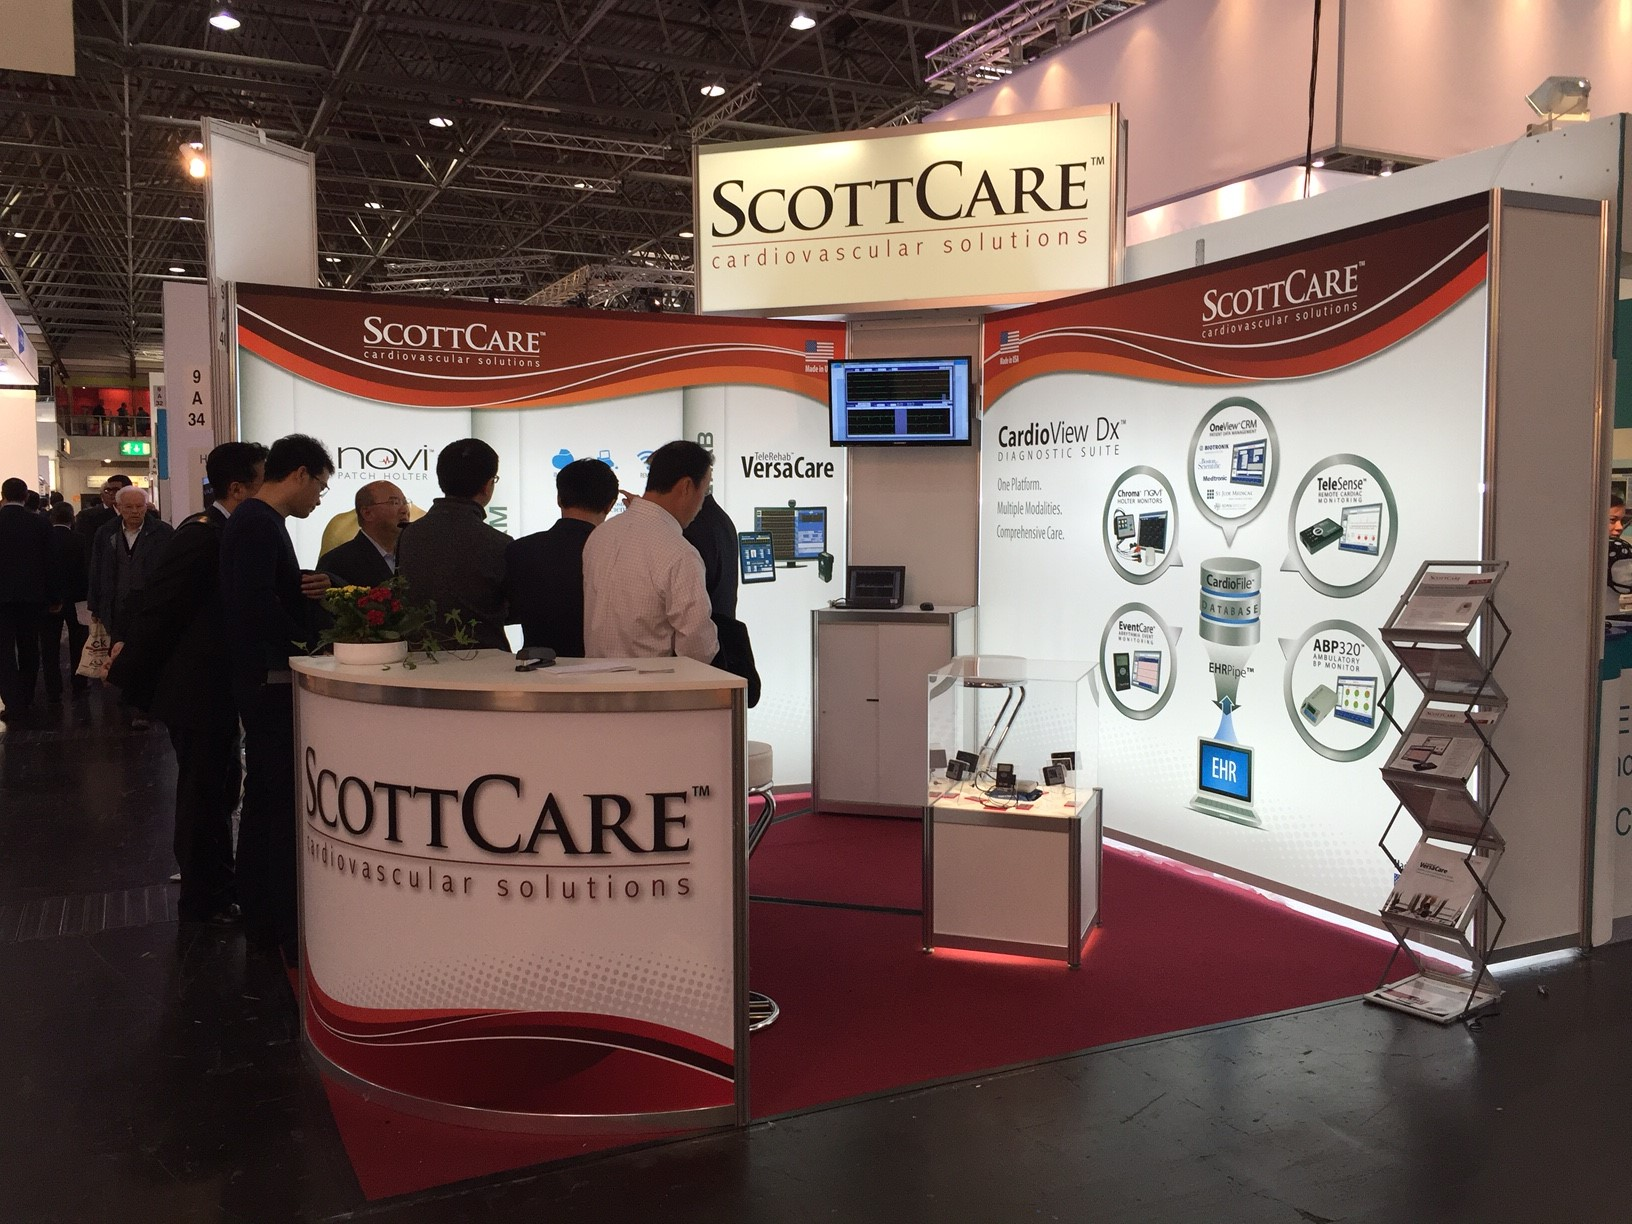 ScottCare exhibits at tradeshows all around the world--and close to your hometown.